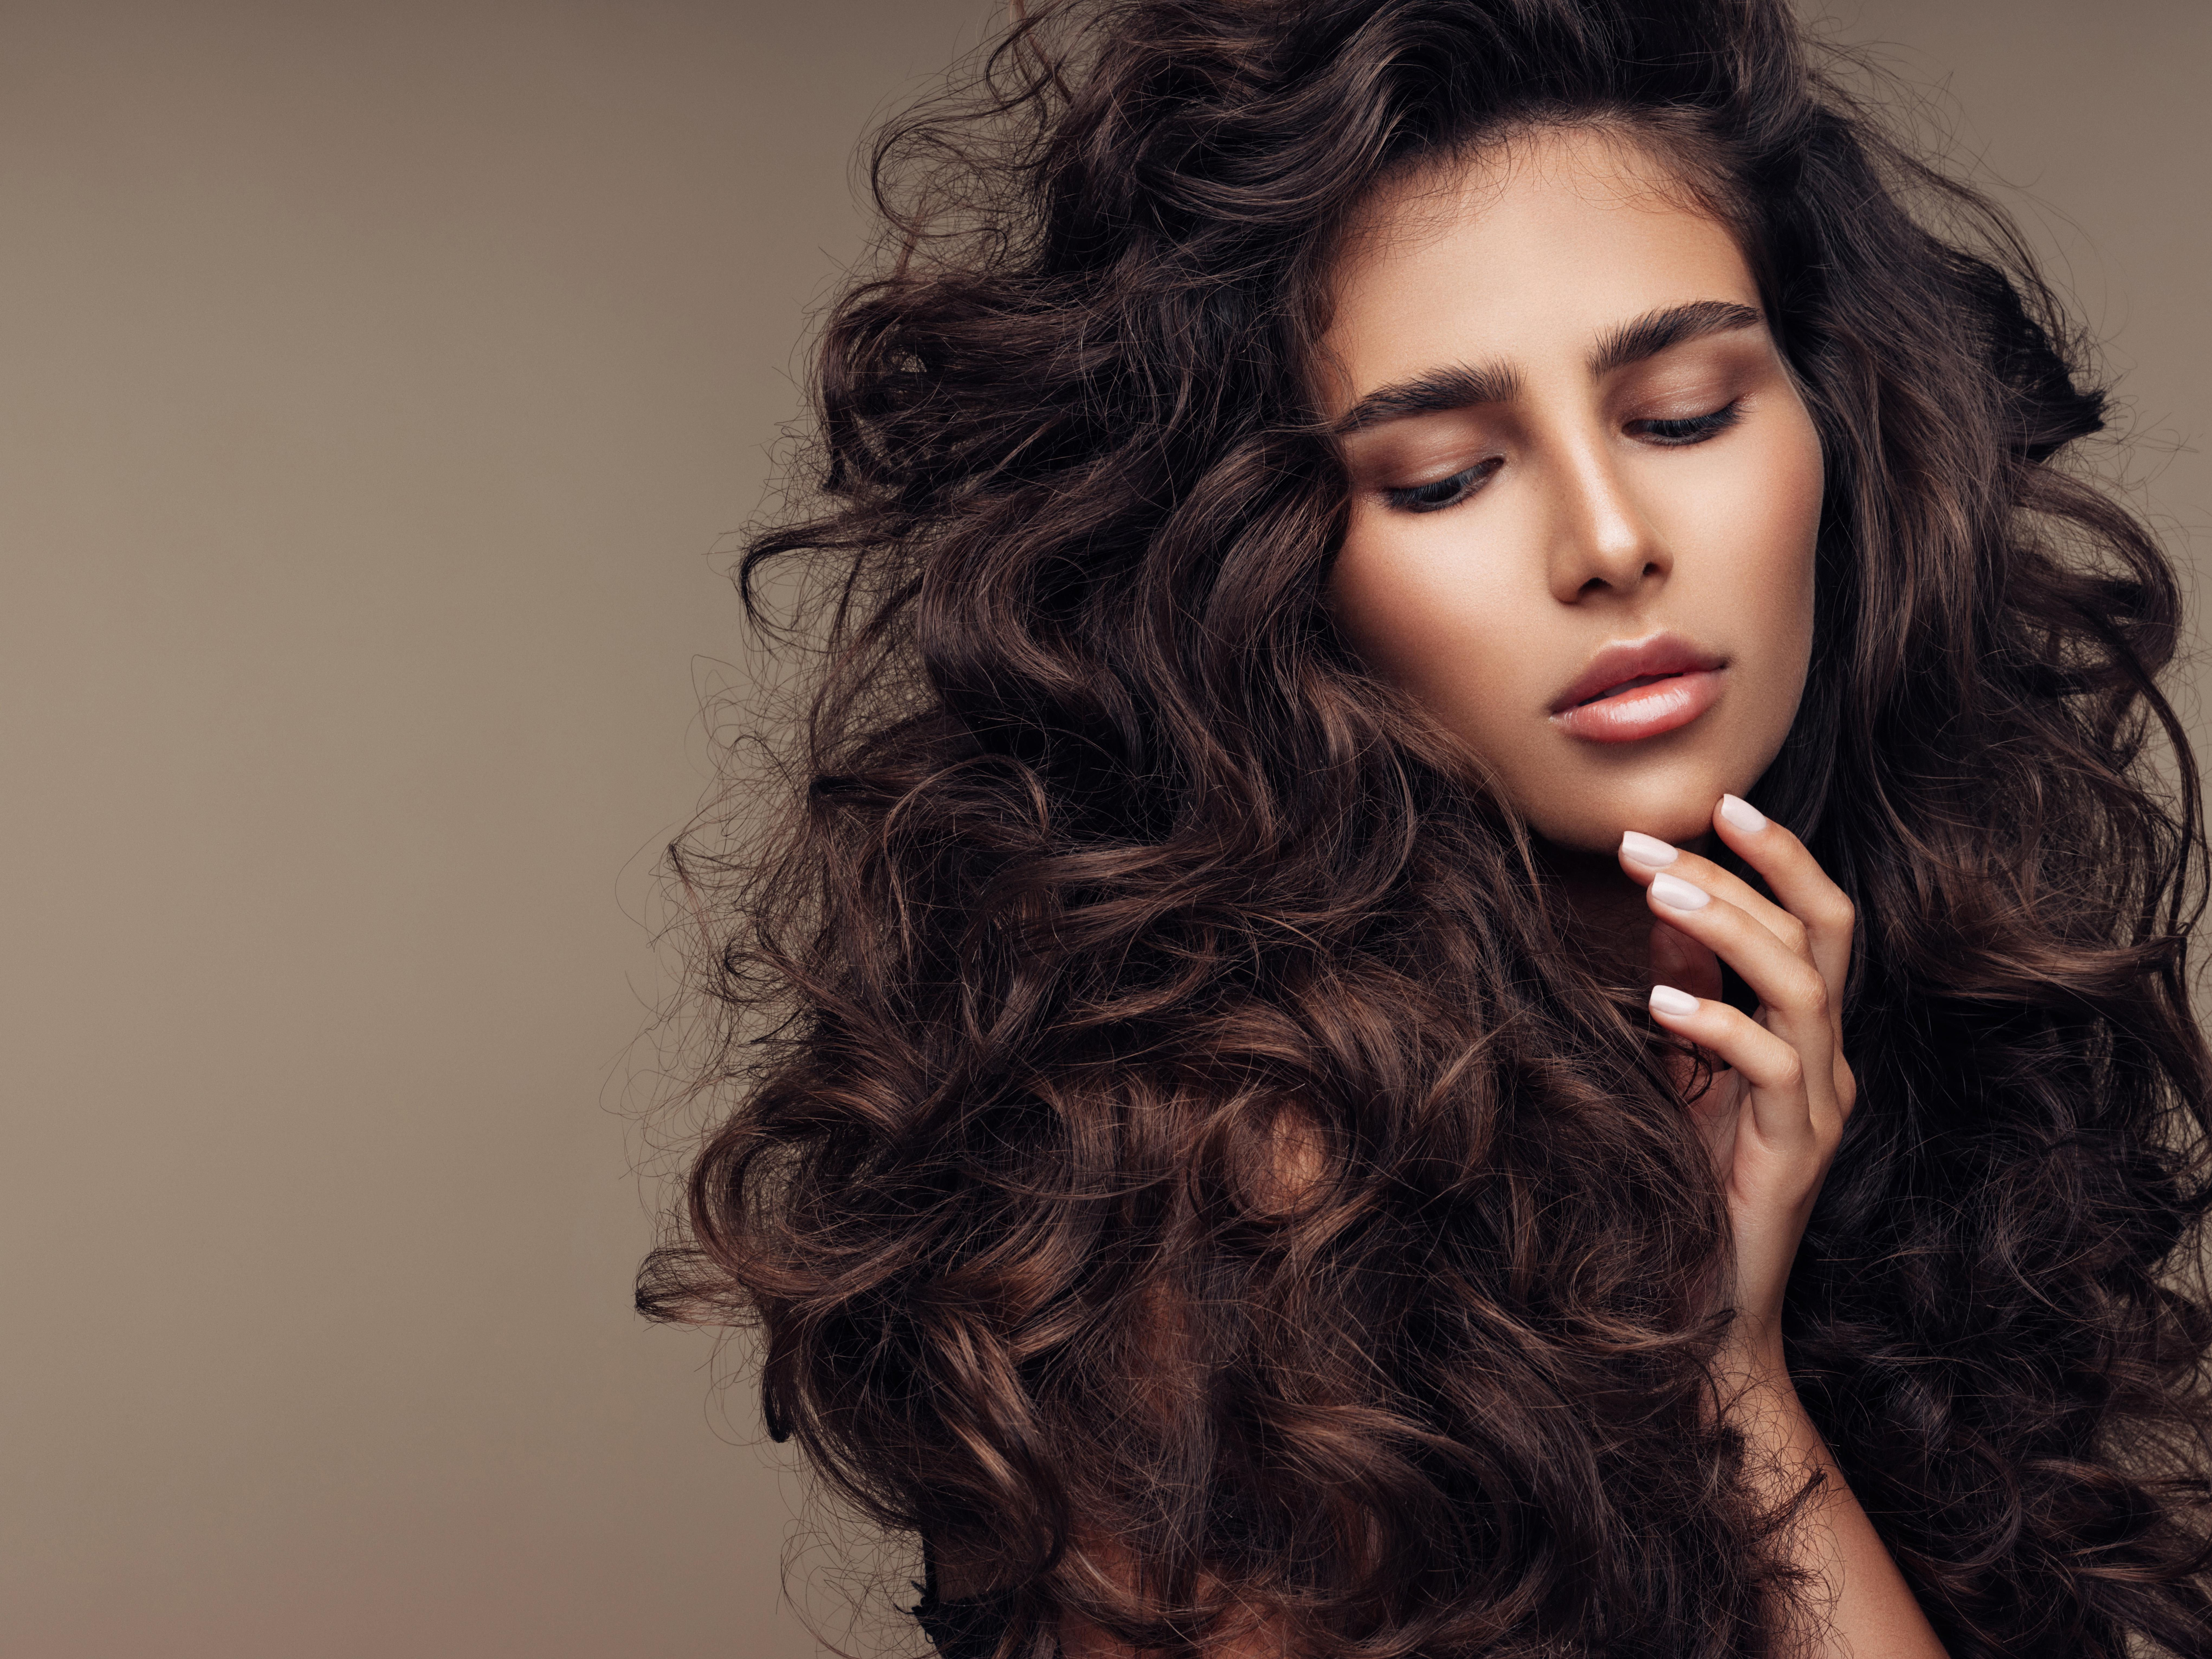 Smooth Your Curls with 7 Sleek Products for Long, Curly Hair